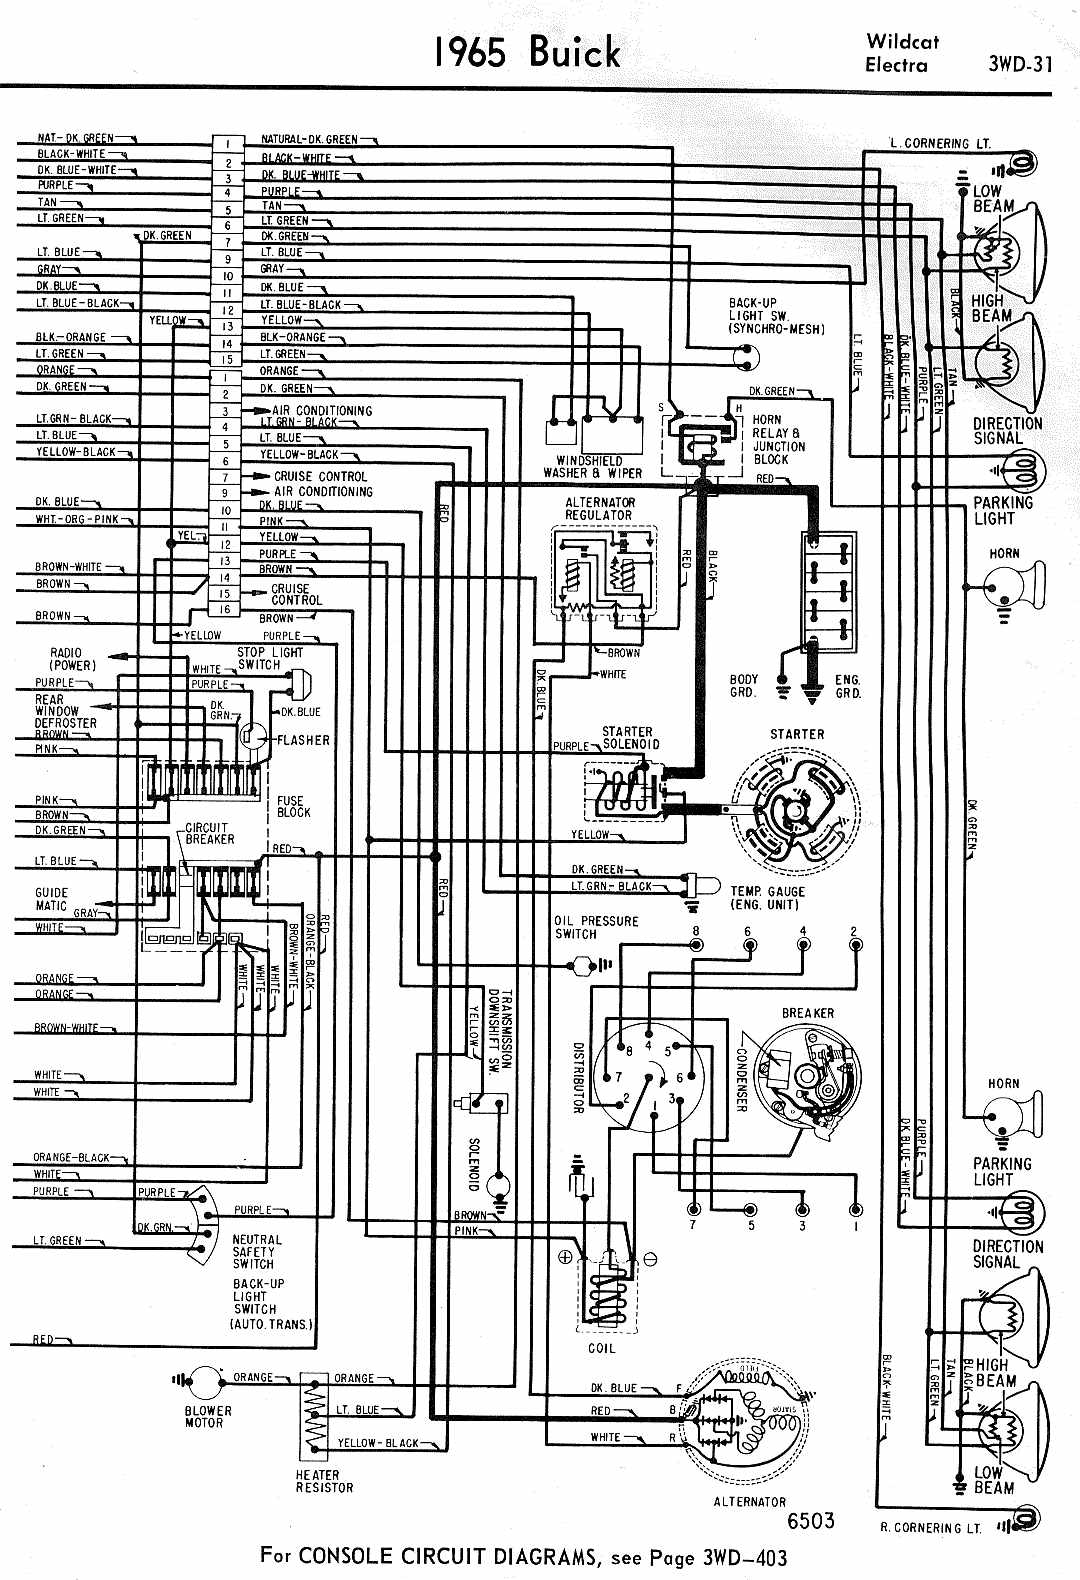 64 Buick Skylark Wiring Diagram Layout Diagrams Chevy Pickup 1991 Schematic Rh Ogmconsulting Co 61 Special